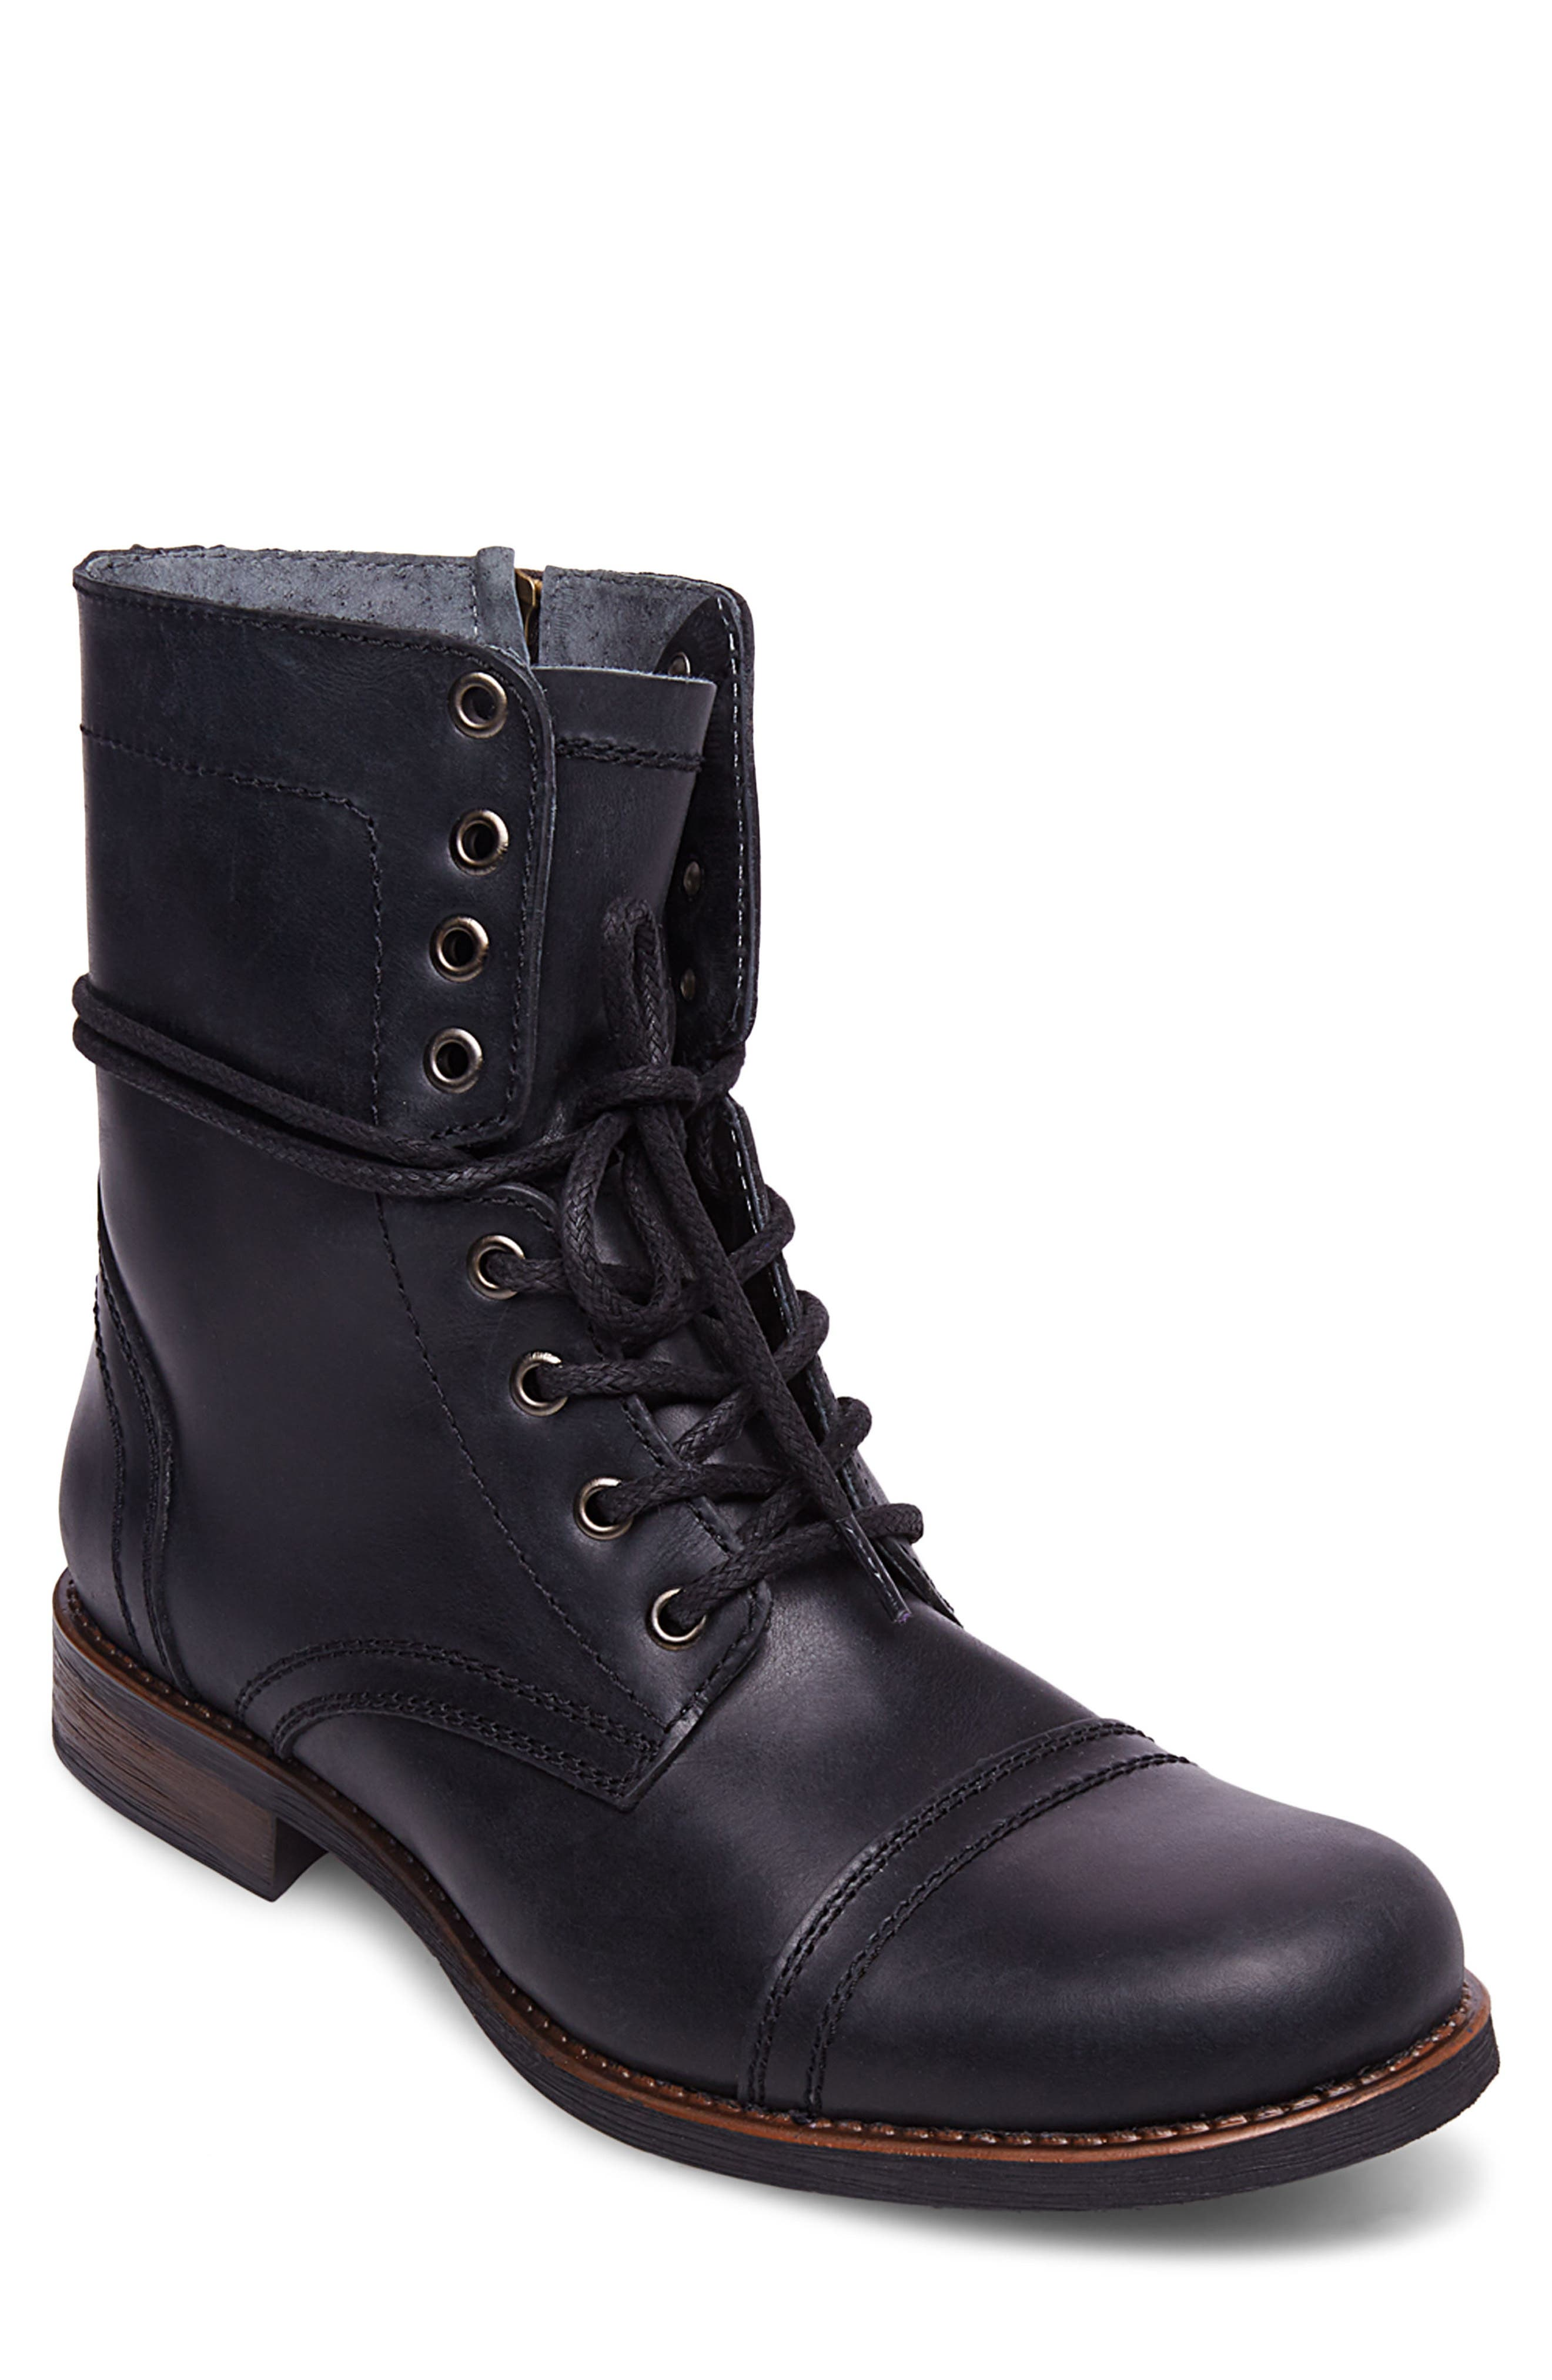 Troopah-C Cap Toe Boot,                         Main,                         color, BLACK LEATHER